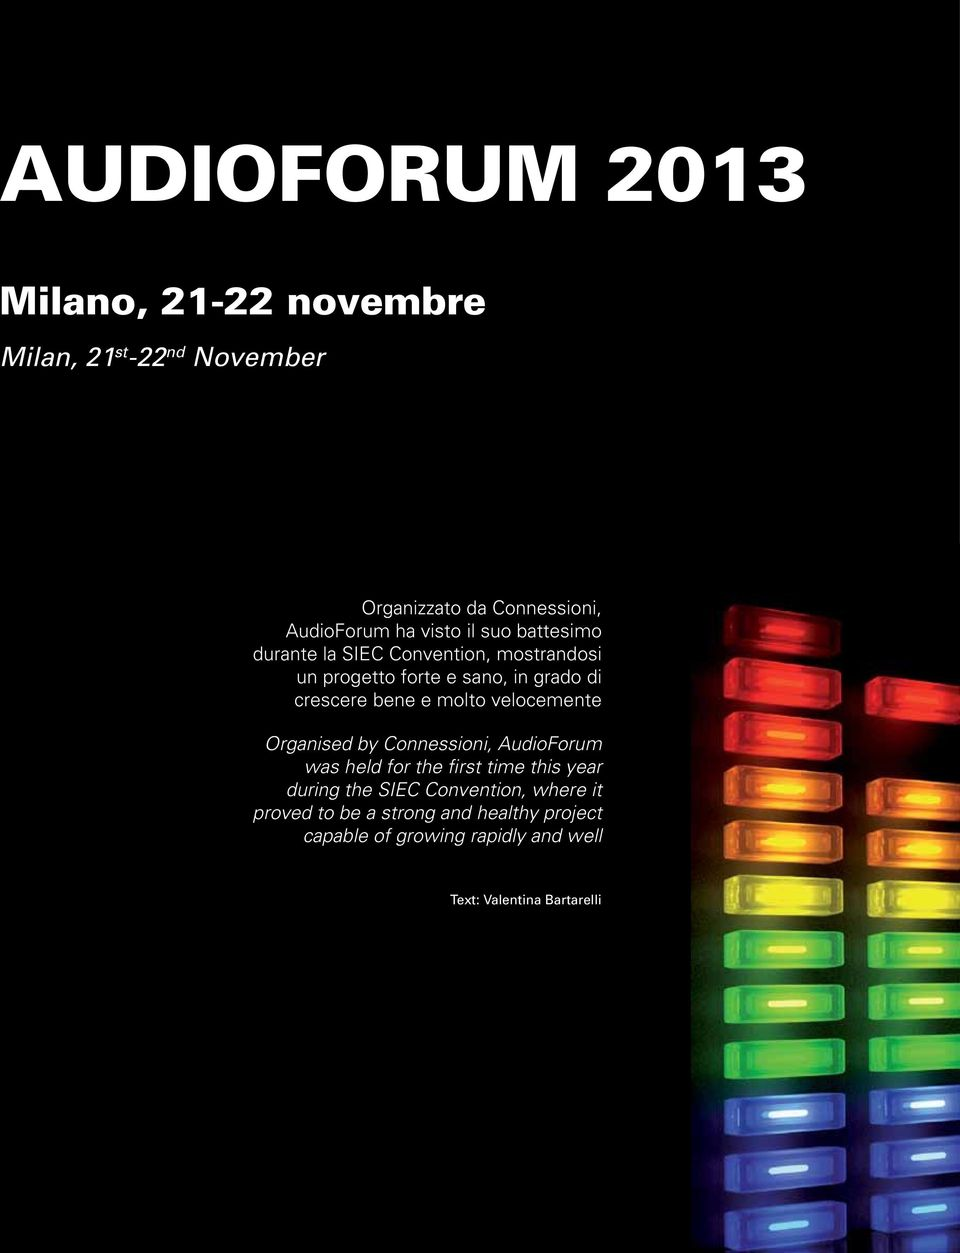 velocemente Organised by Connessioni, AudioForum was held for the first time this year during the SIEC Convention, where it proved